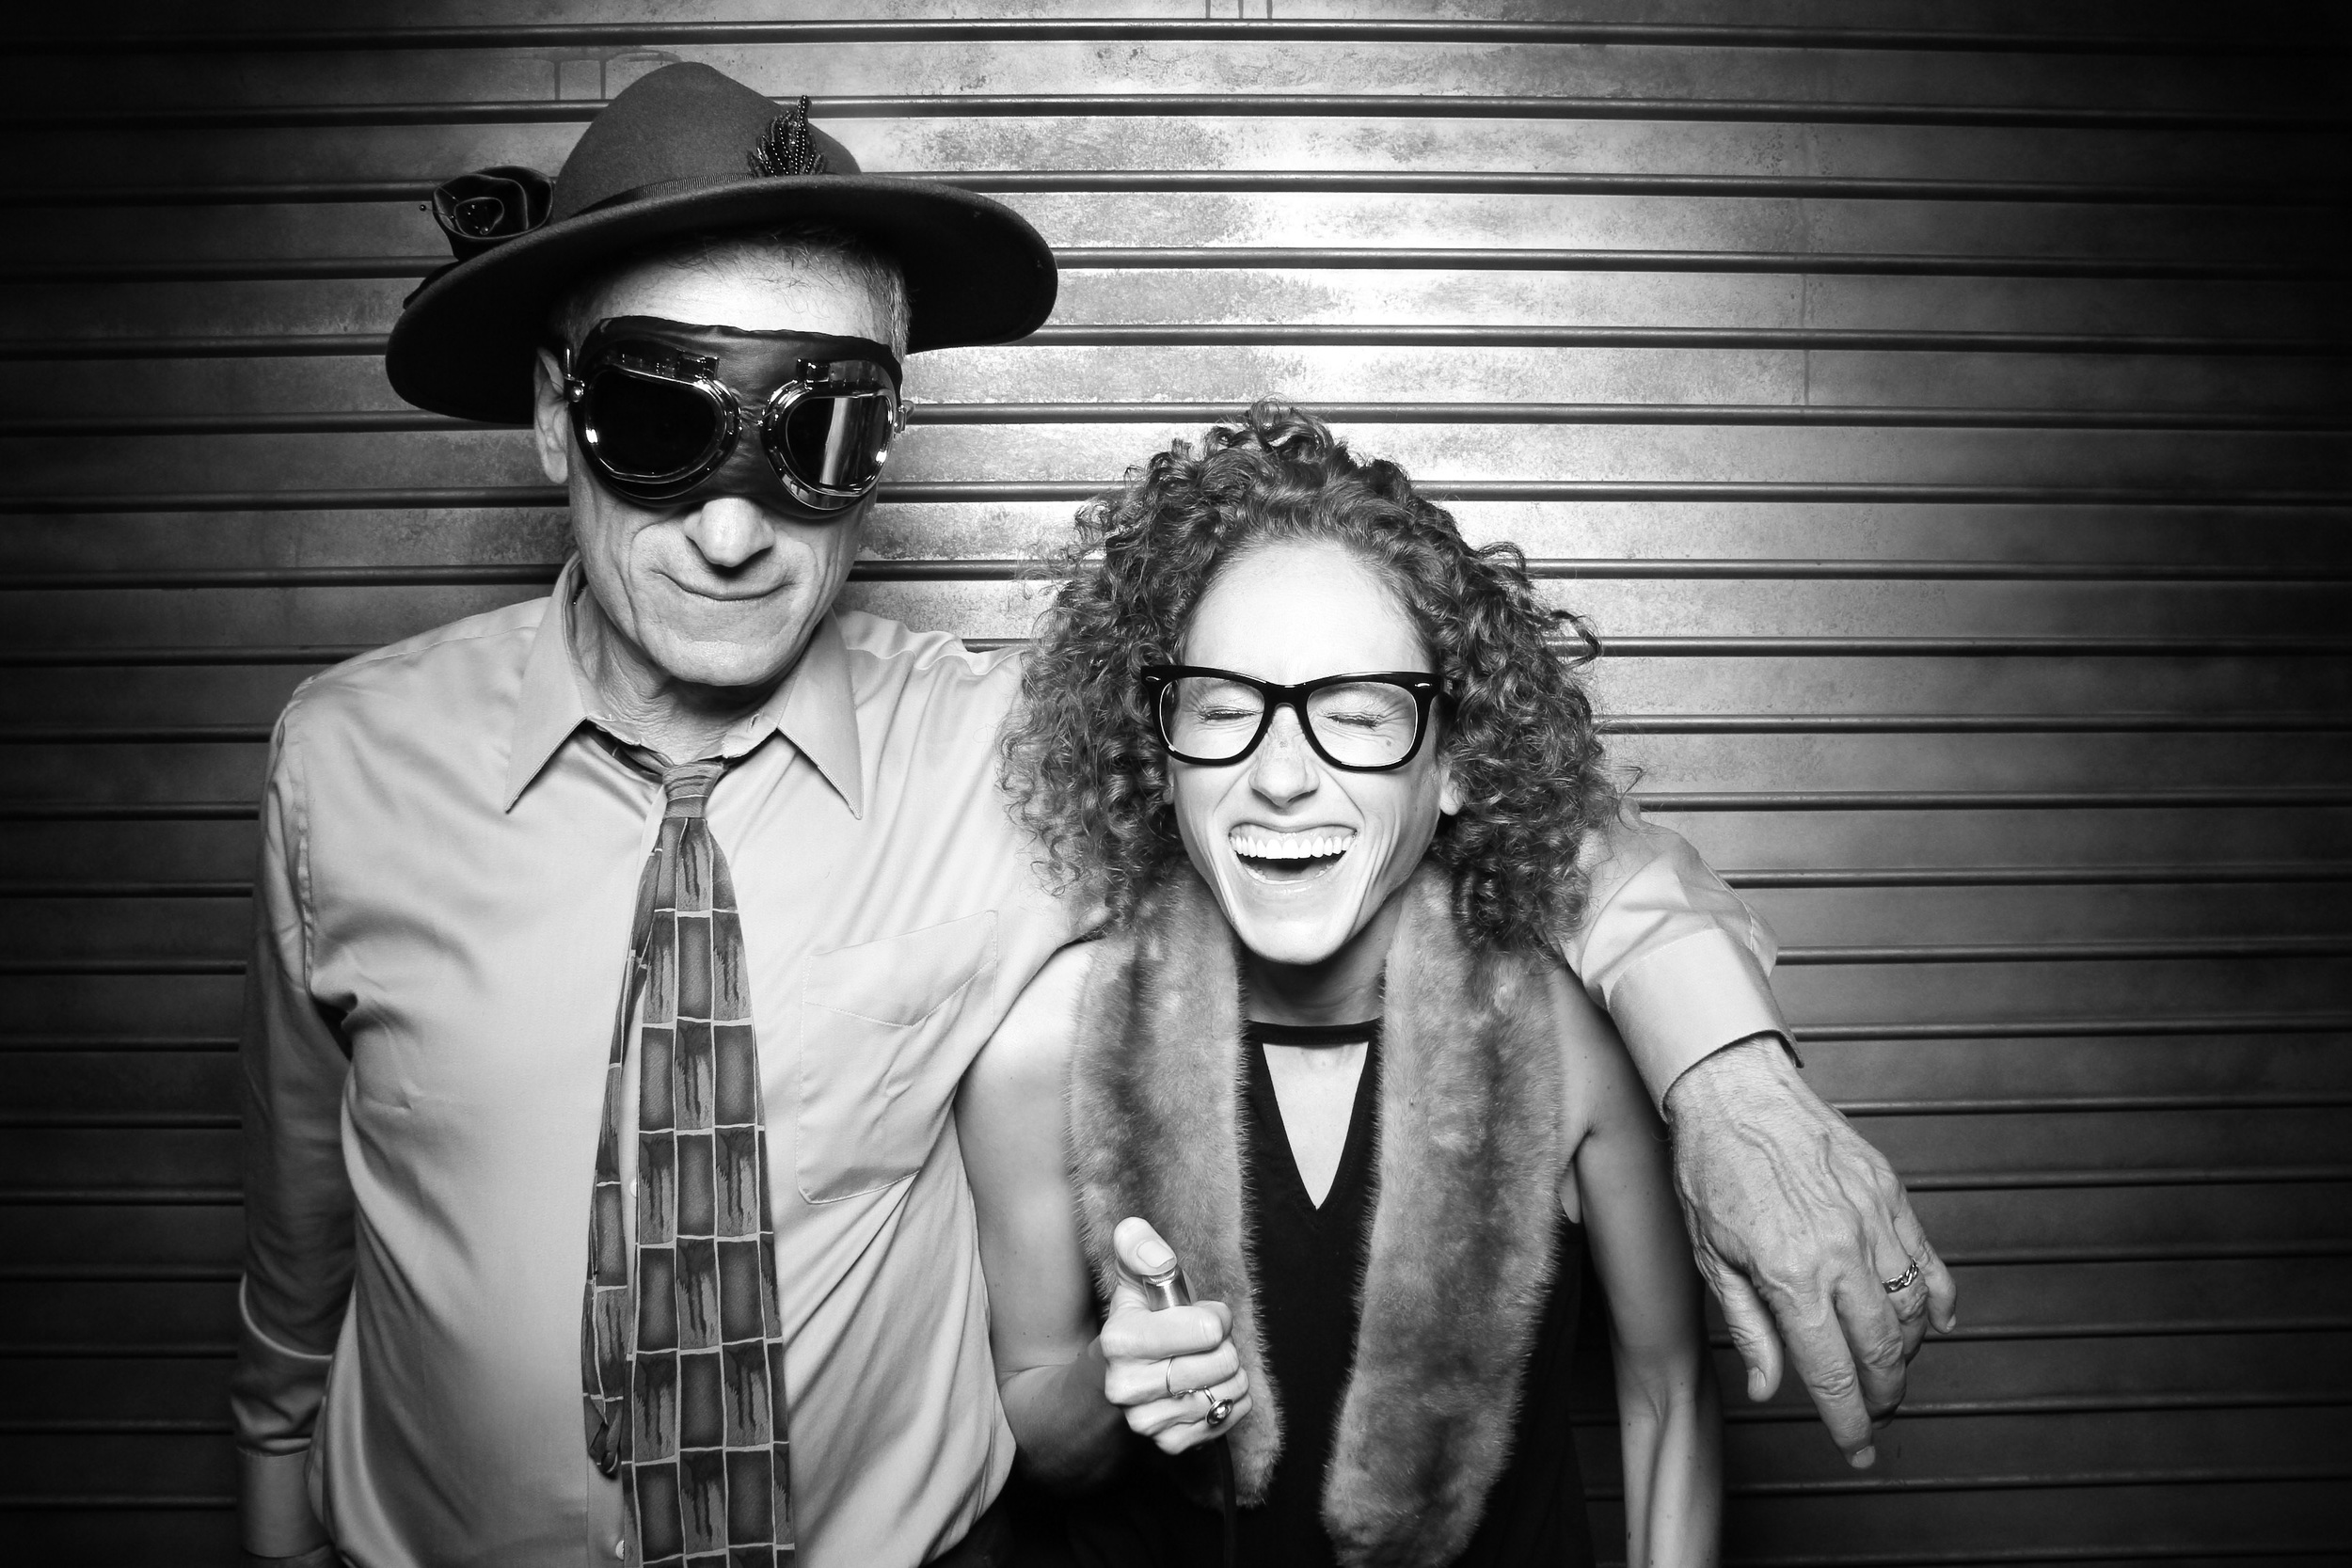 Guests pose for a fun photo booth picture at Morgan Manufacturing!